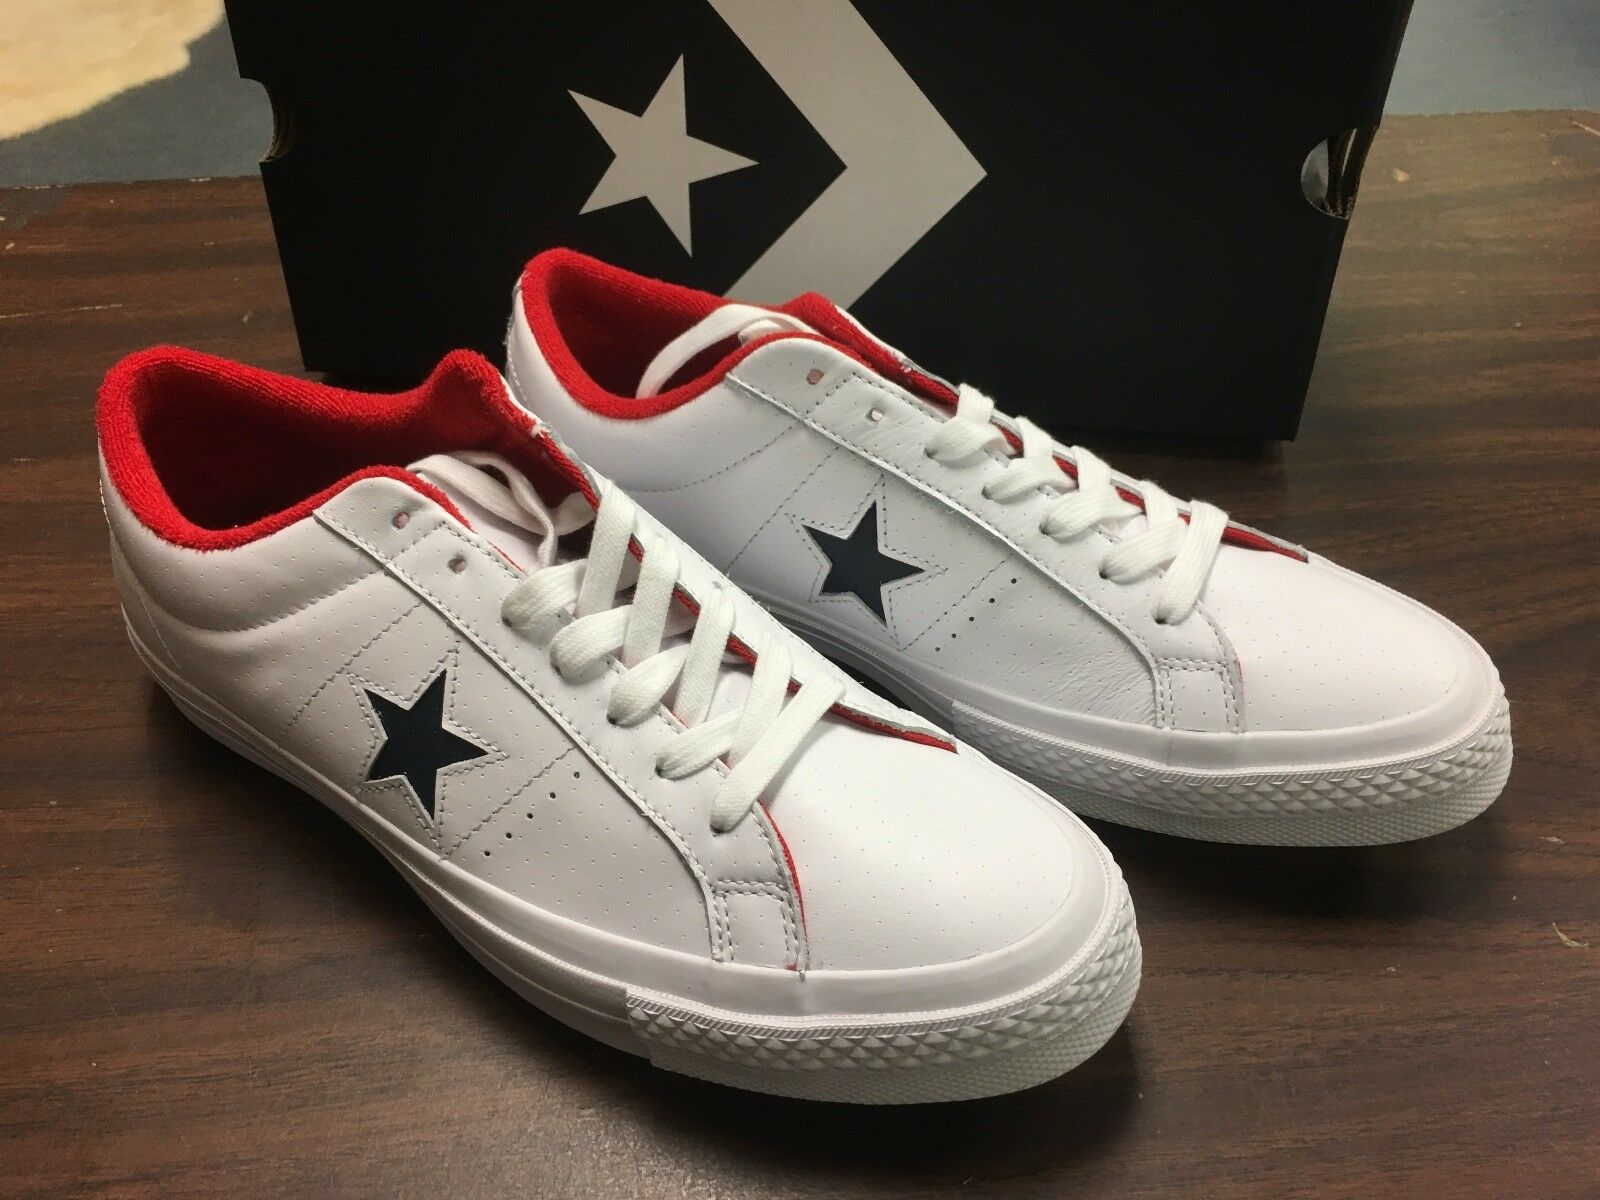 CONVERS ONE STAR OX Weiß  ATHLETIC NAVY  rot 160555C MENS 11